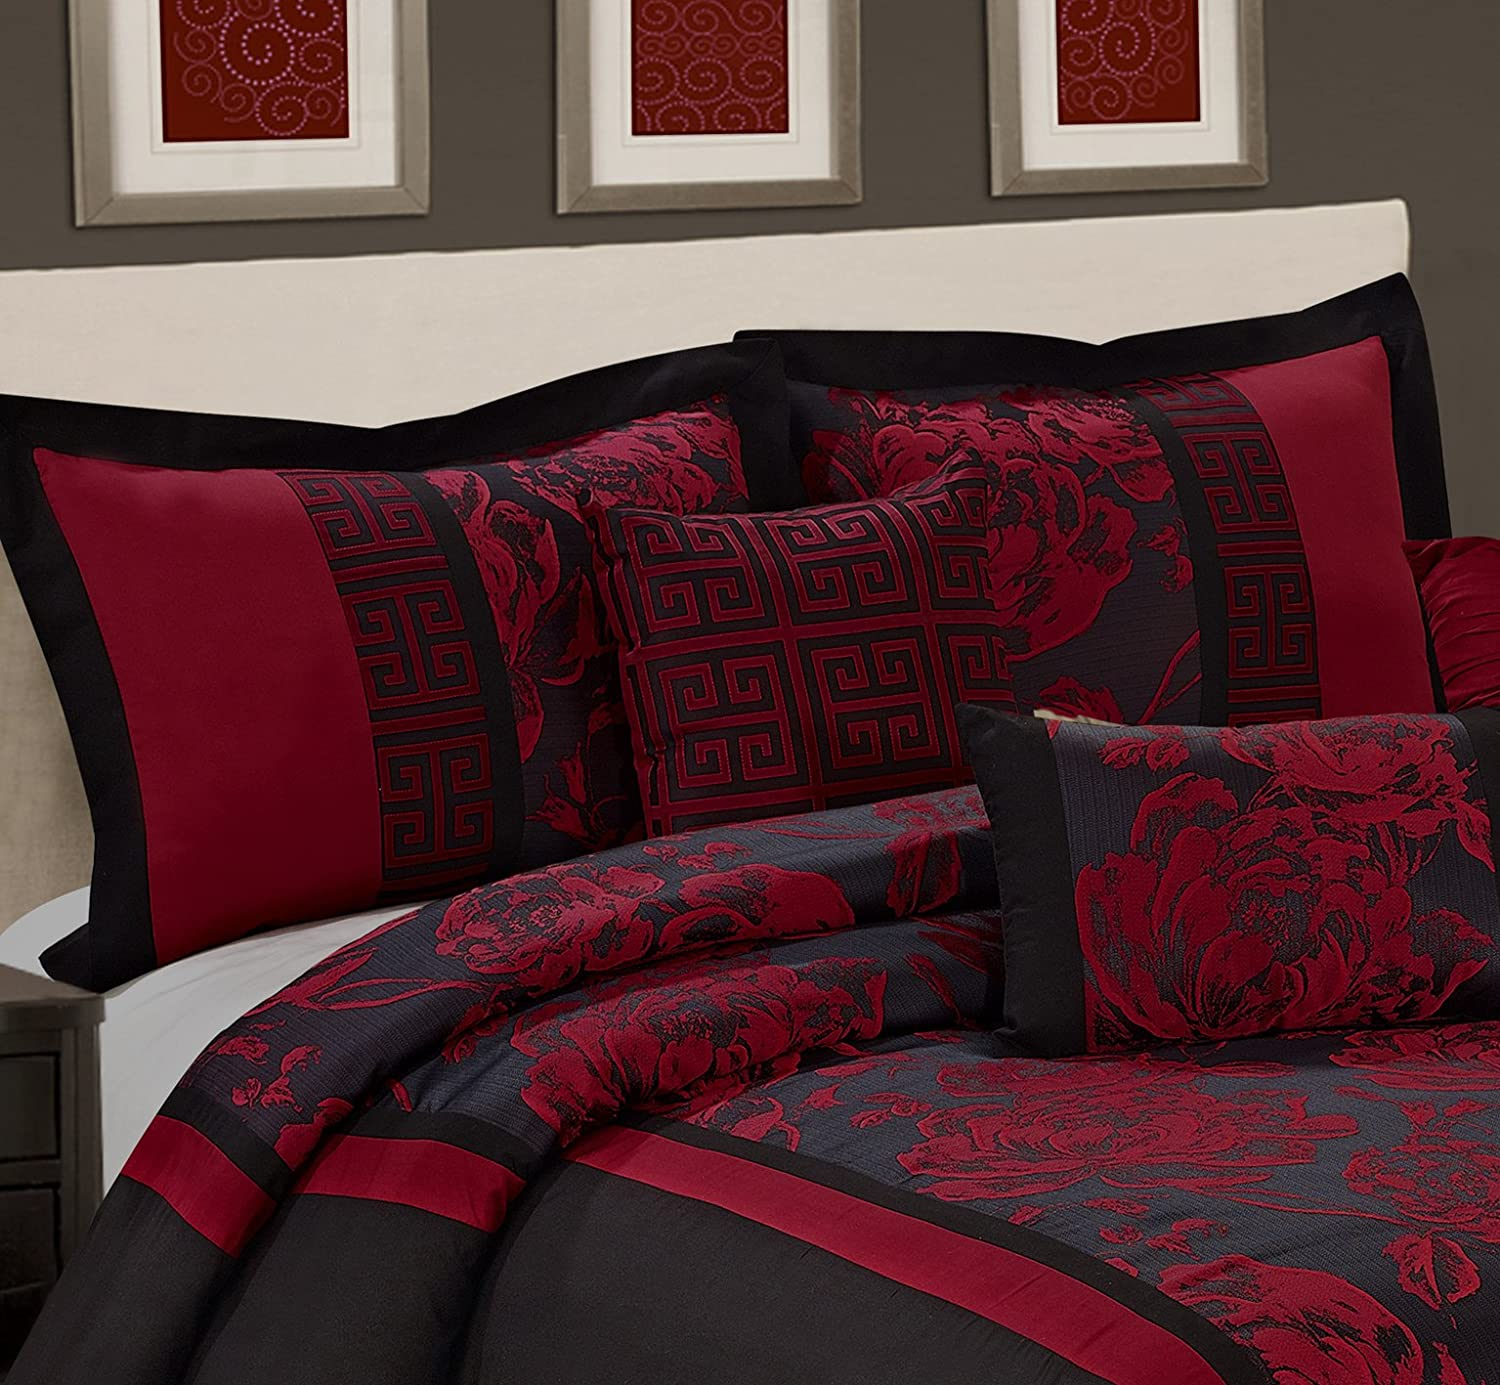 7 Piece Peony Jacquard Fabric Patchwork Comforter Set Queen King CalKing Size (King, Burgundy